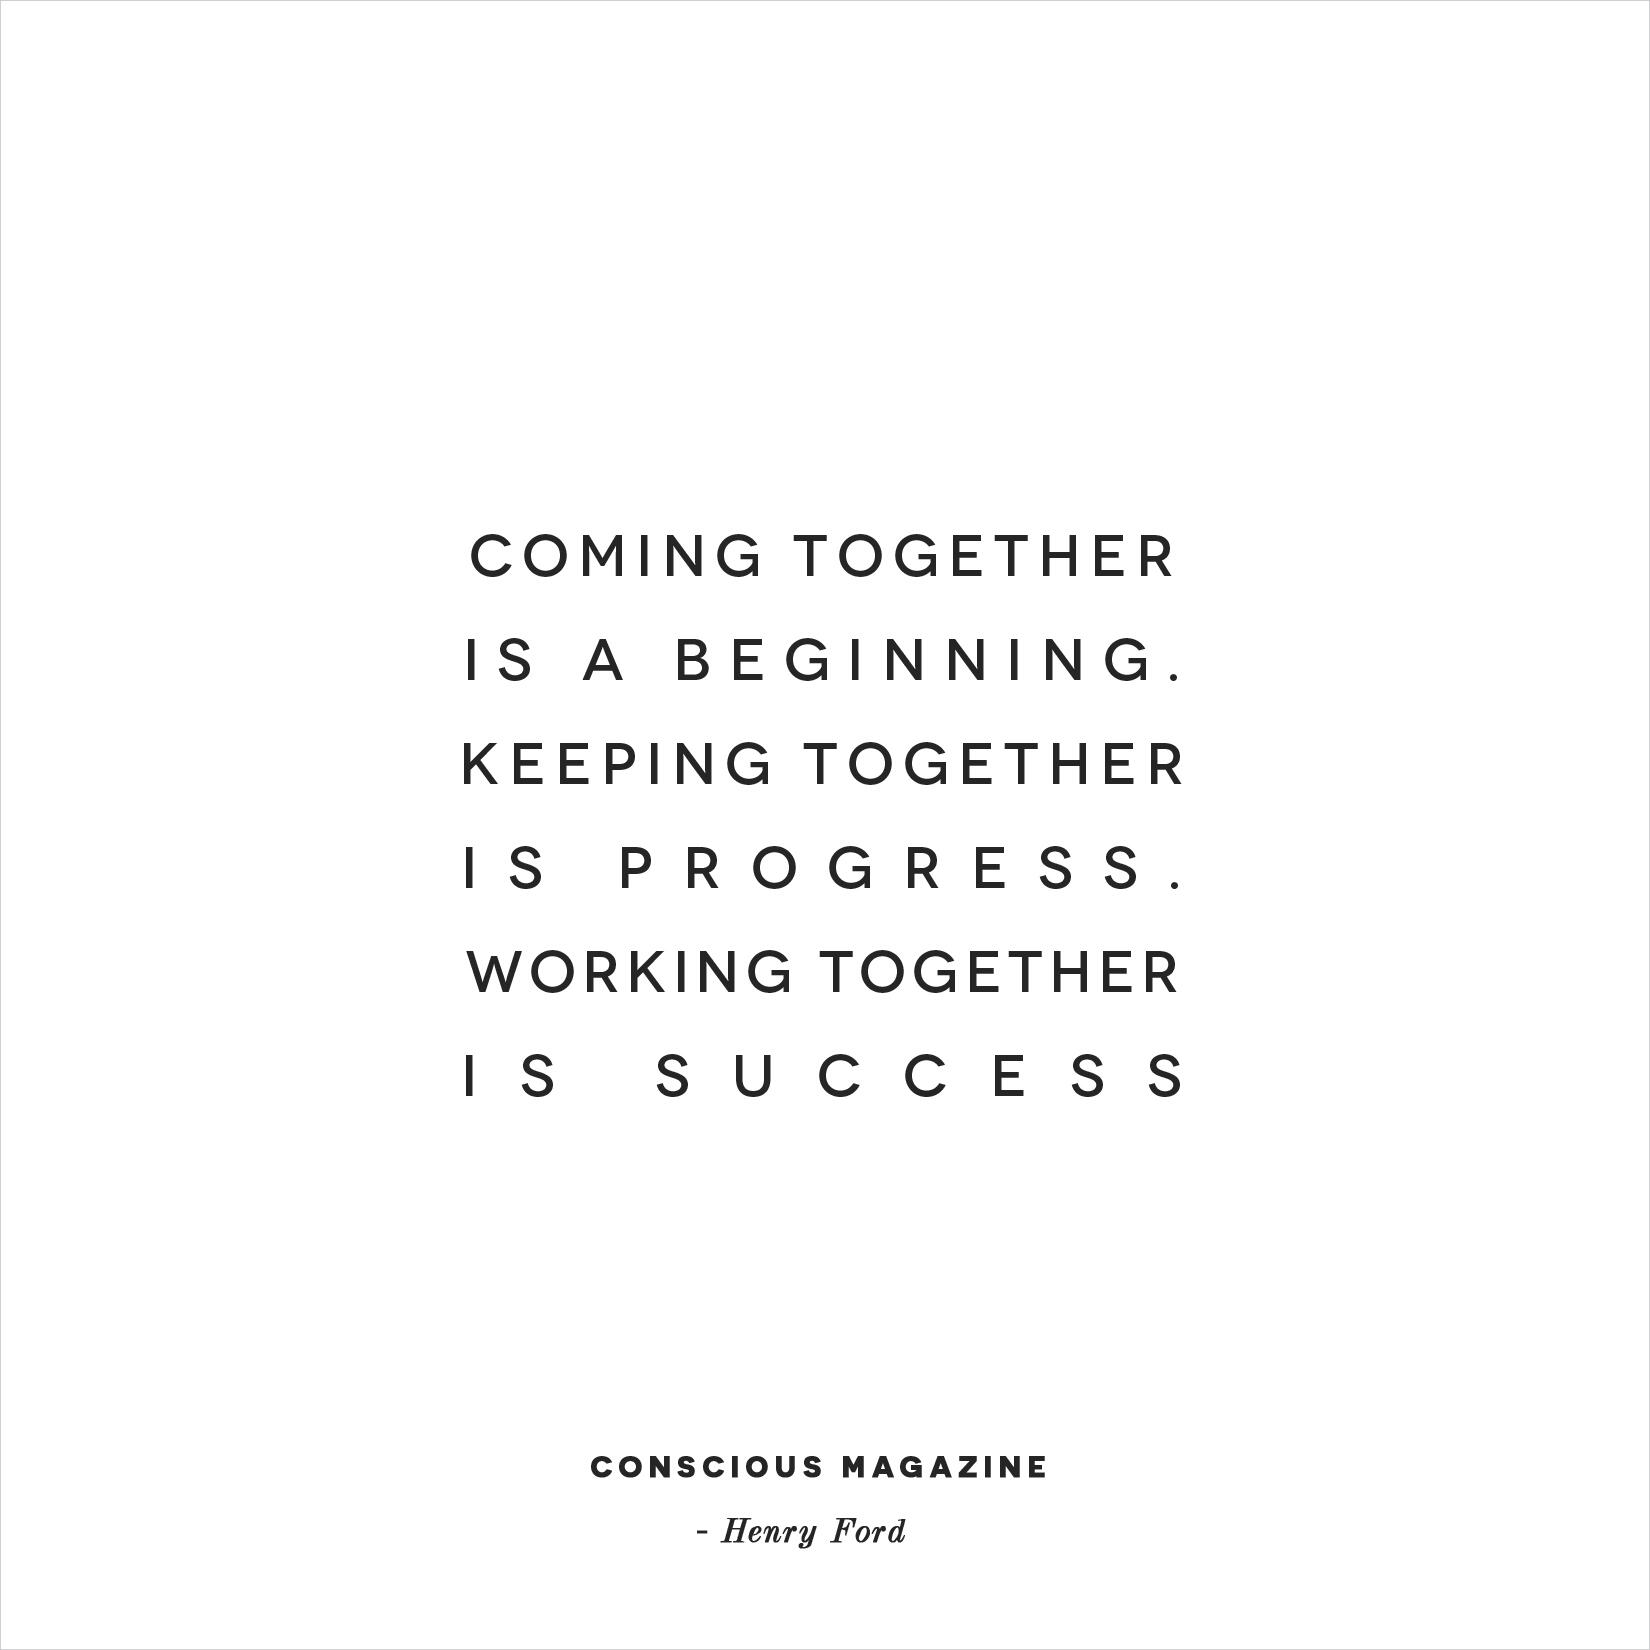 Keeping Together Quotes Keeping Together is Progress